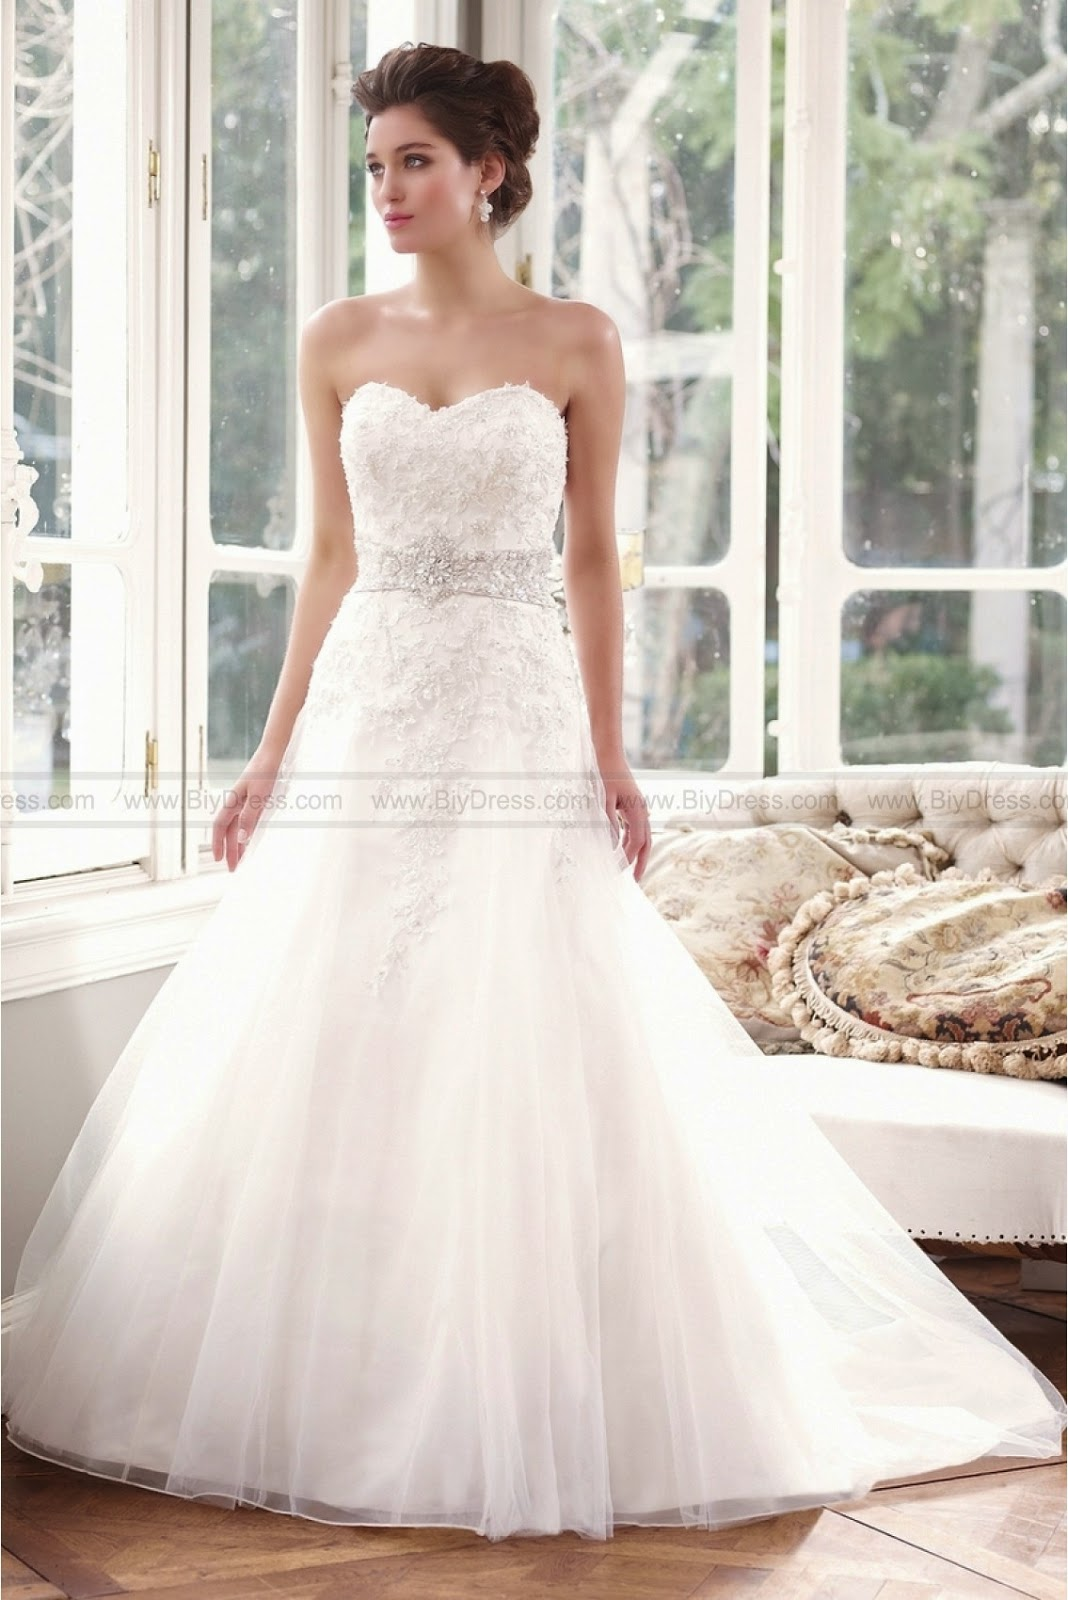 Mia Solano Wedding Dress Is Loved By Many Brides